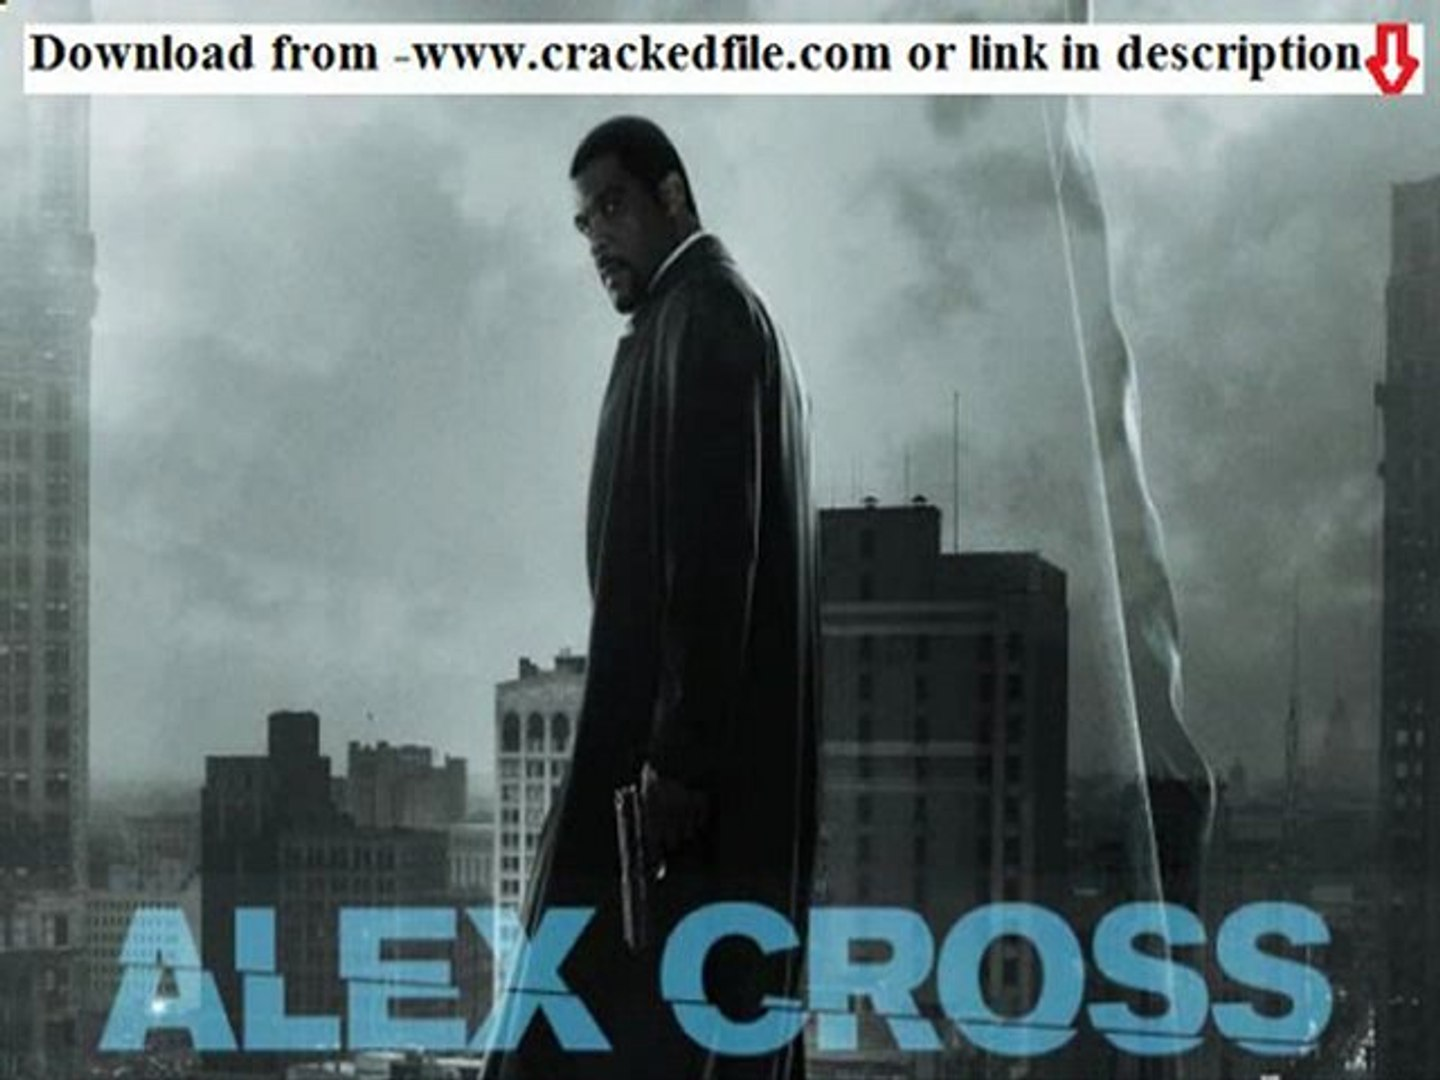 DOWNLOAD ALEX CROSS 2012 MOVIE HD DVDrip